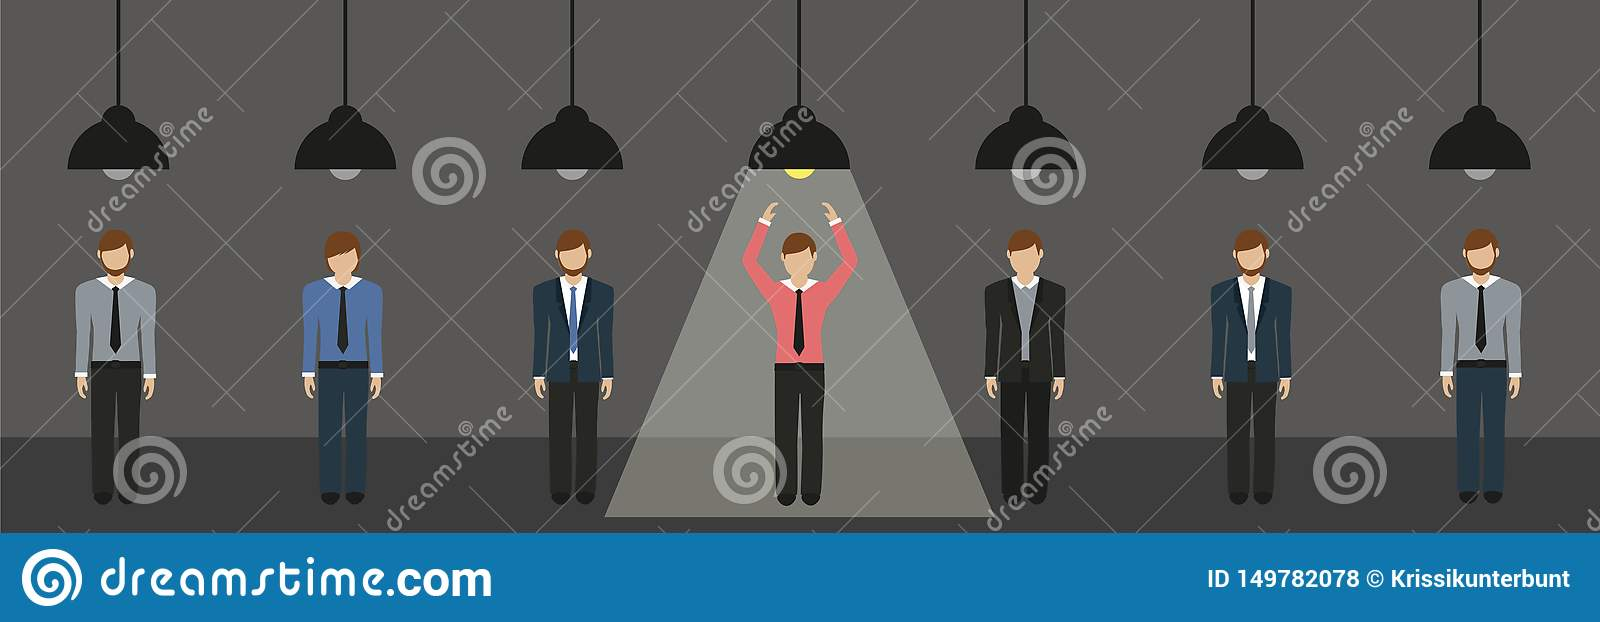 Businessmen are standing under lamps one switched on hanging lamp